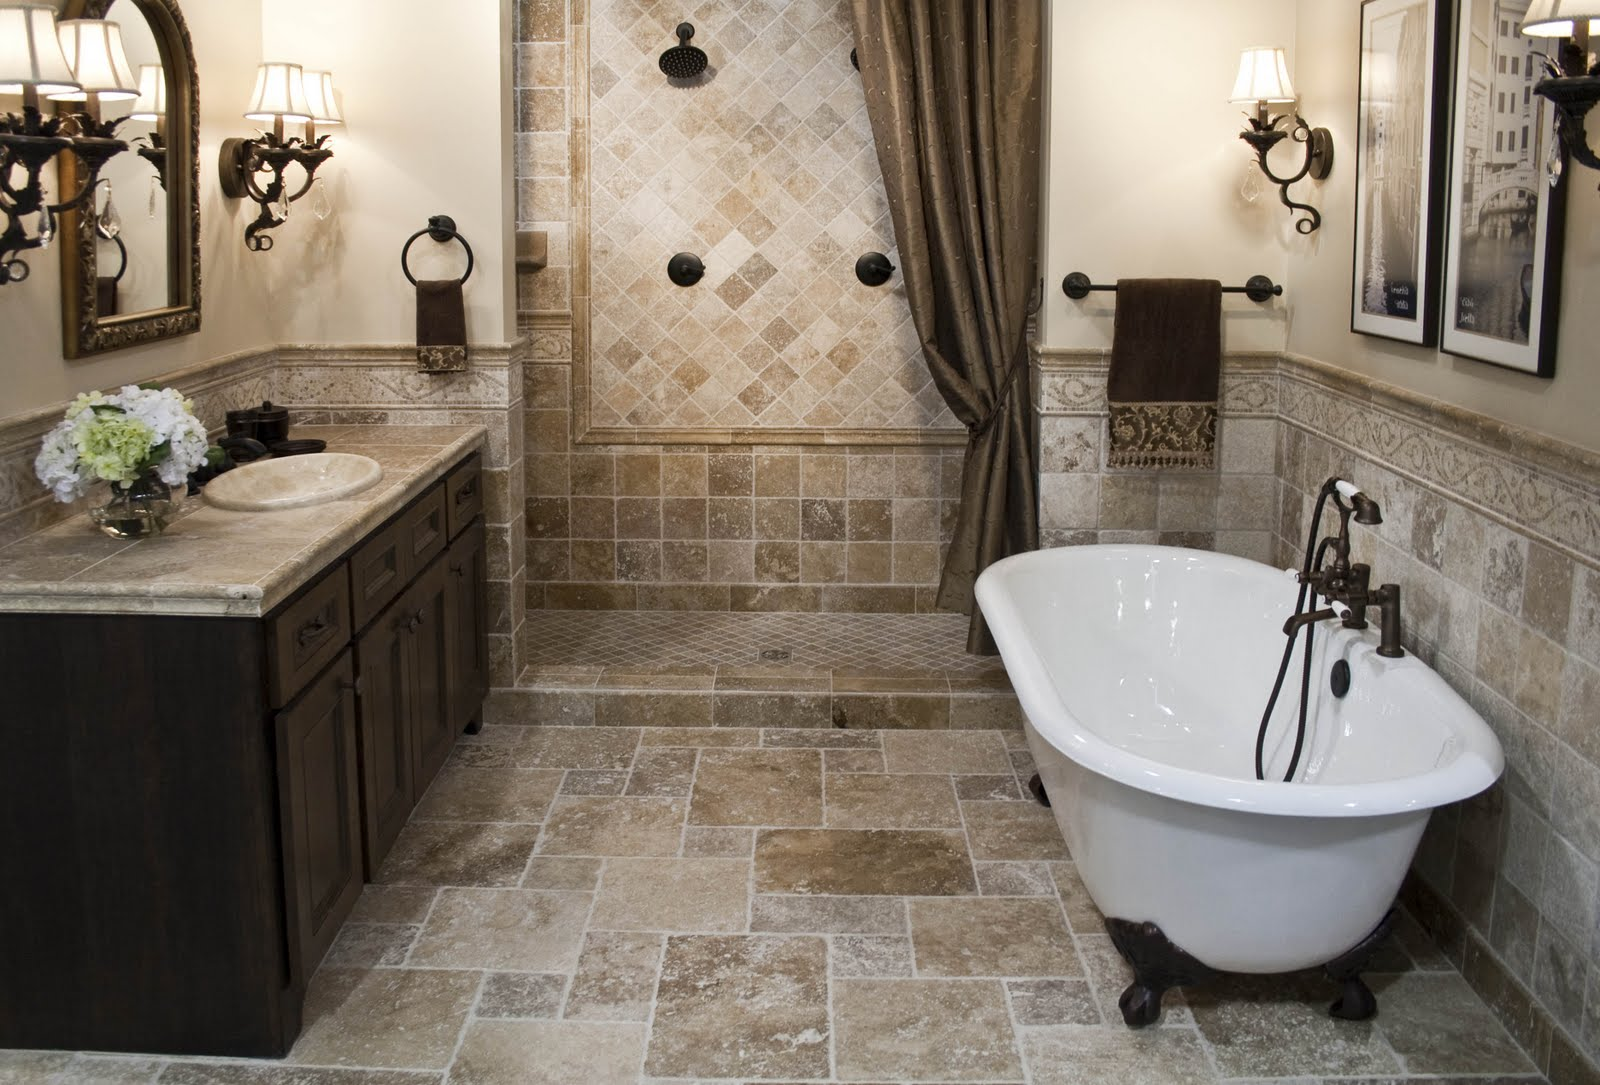 Diy Bathroom Remodel Photos tips for diy bathroom renovations on a budget